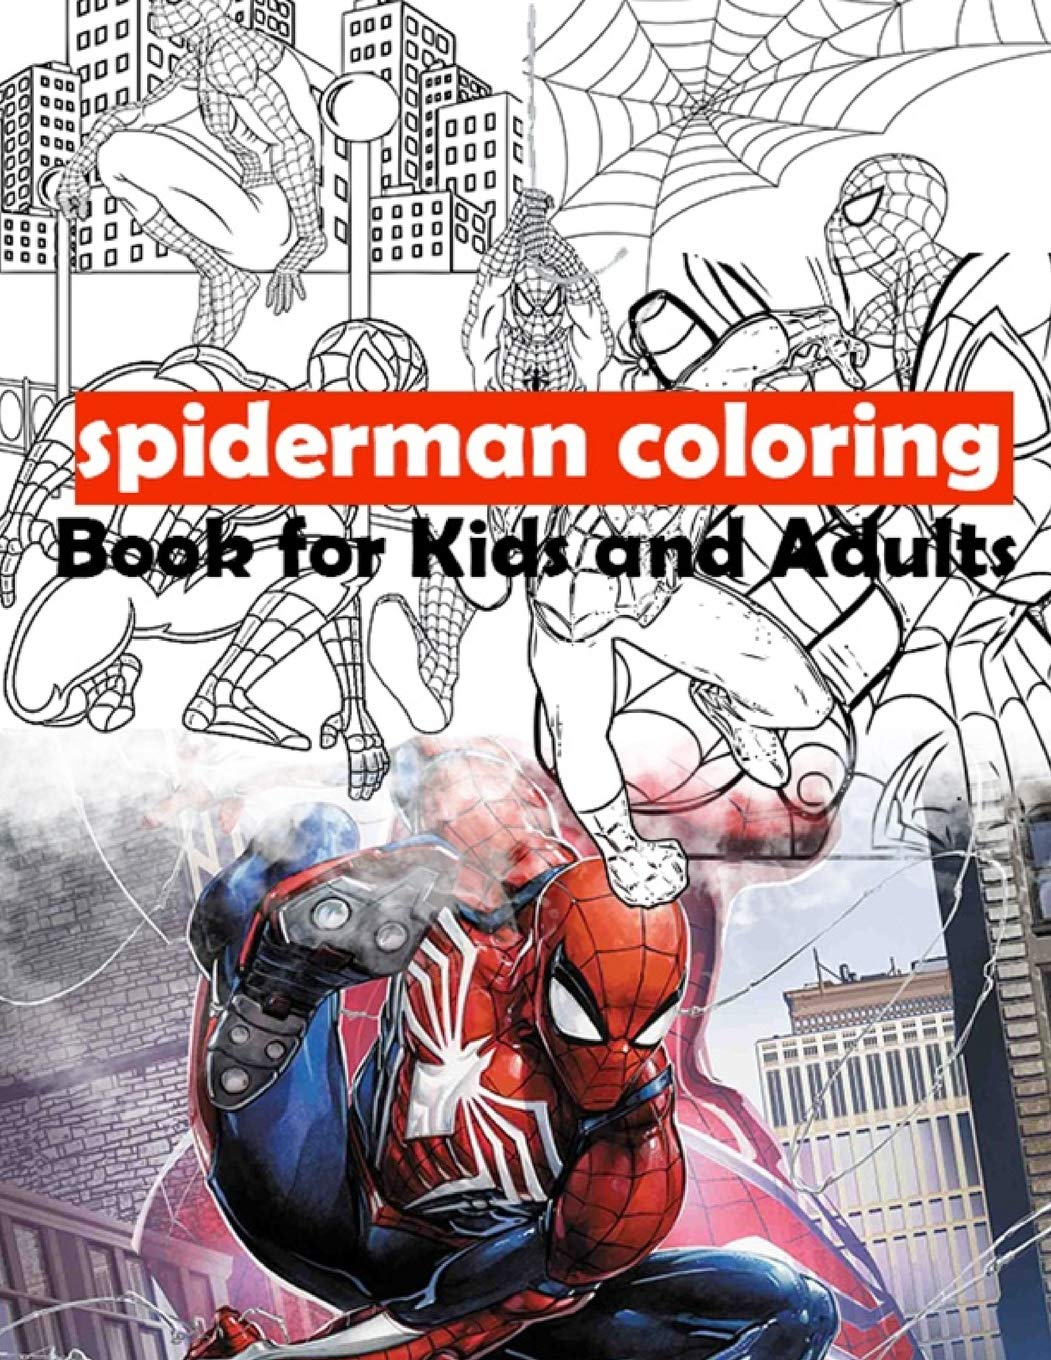 - Spiderman Coloring Book For Kids And Adults: Lane, Mrs Rebica